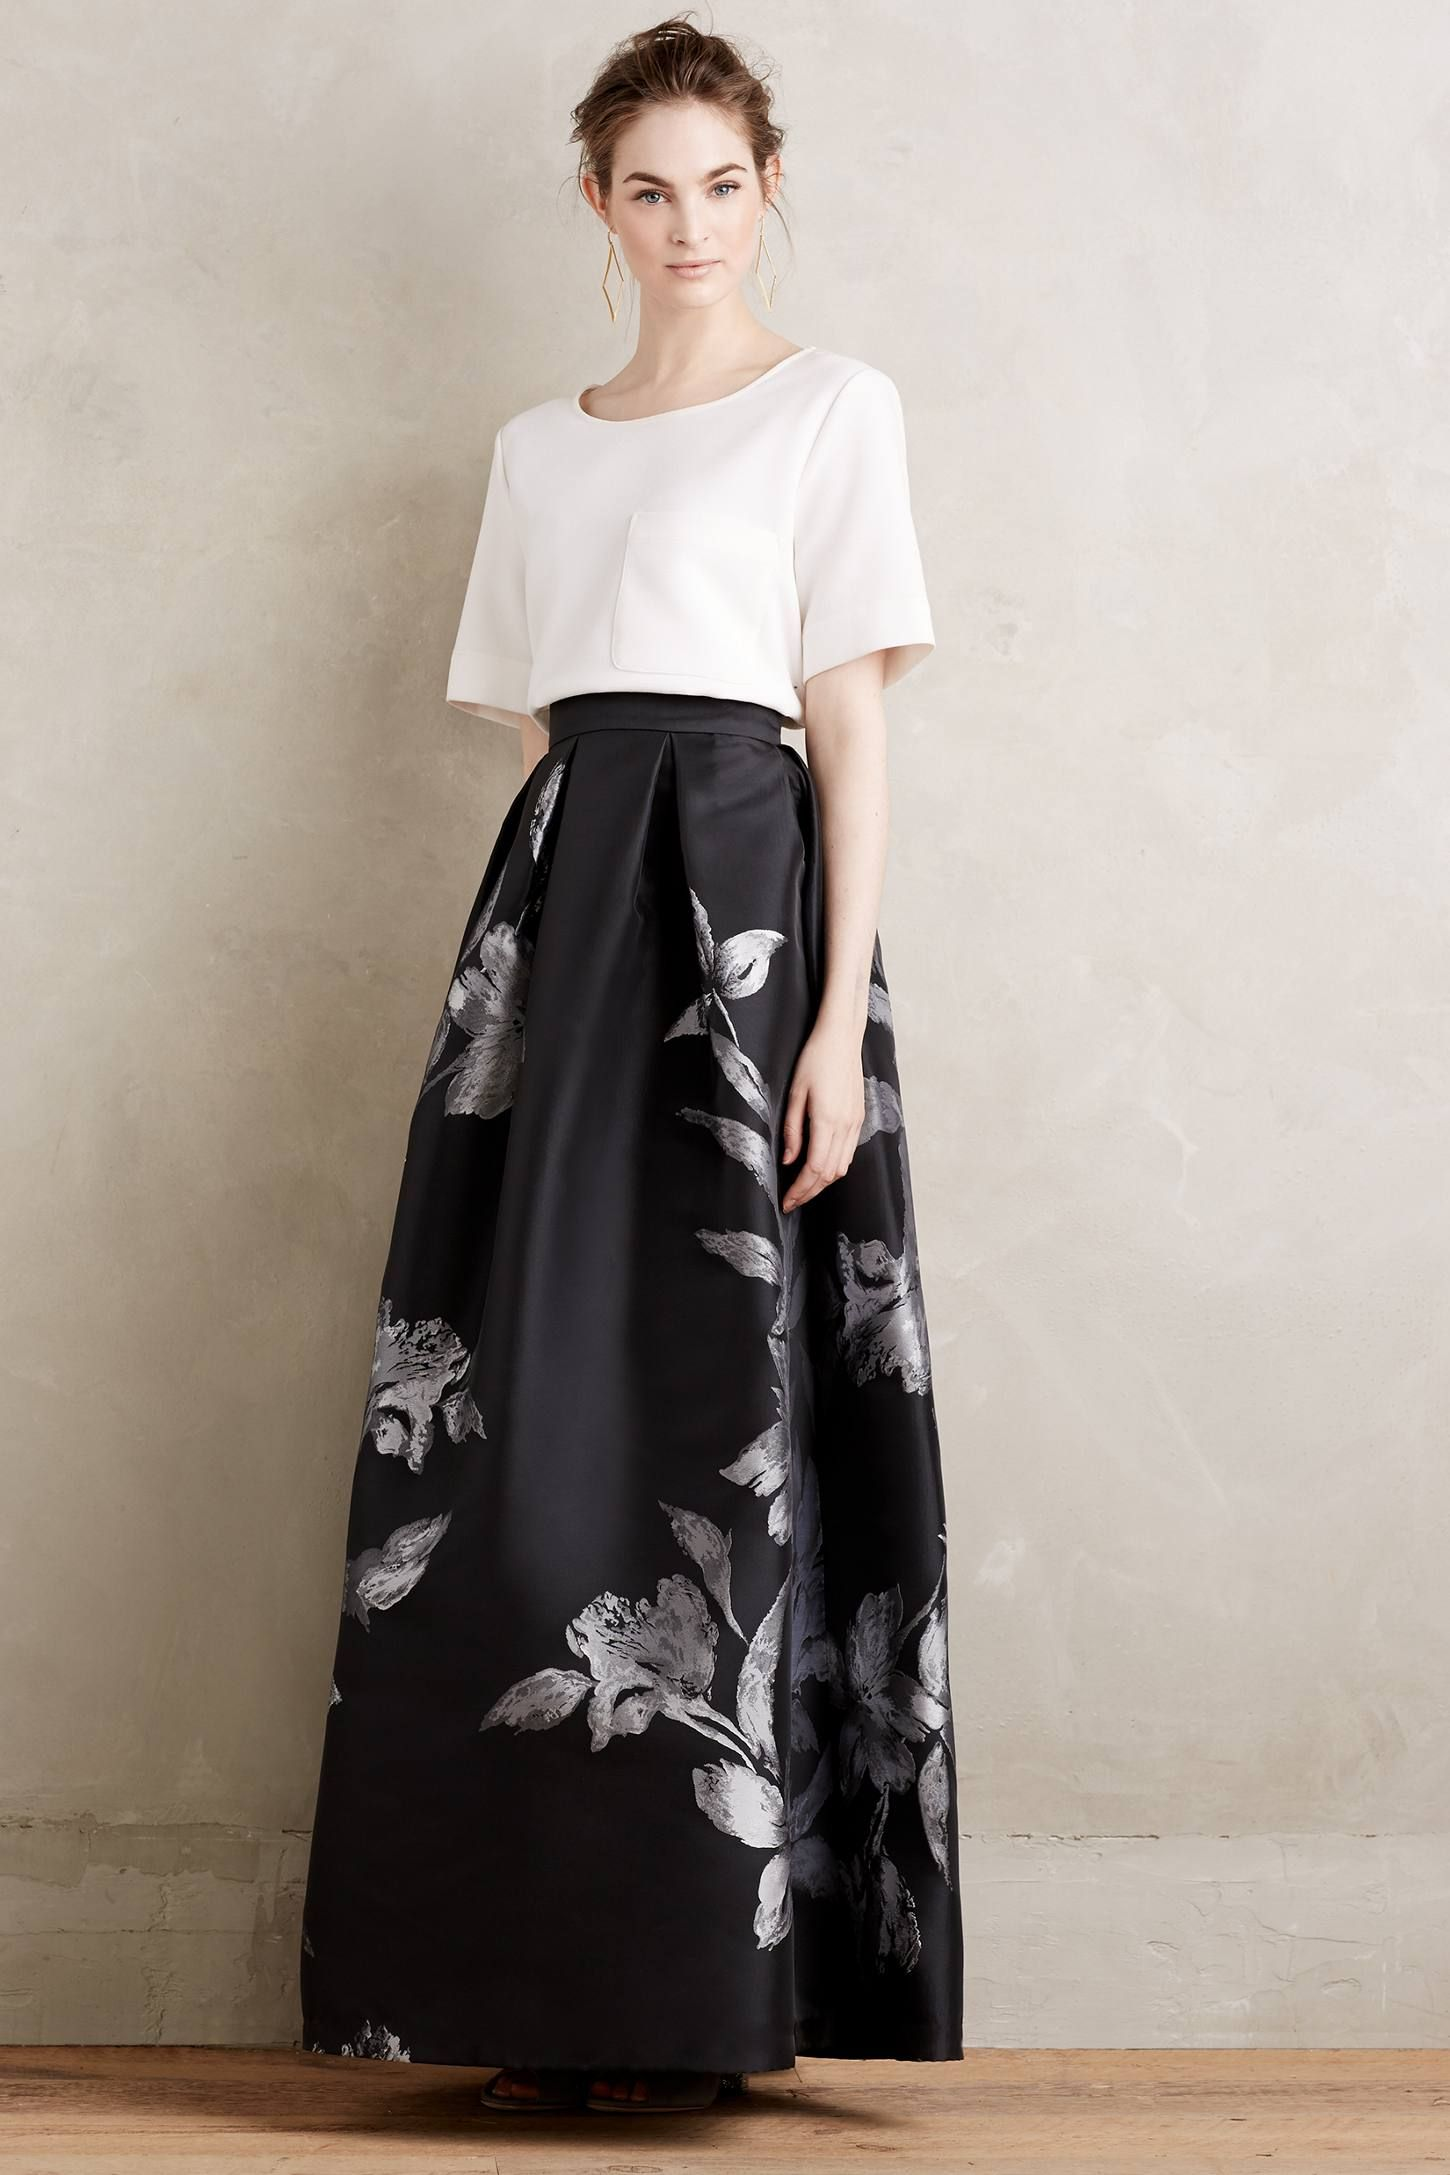 Etched Blooms Ball Skirt | Clothing | Pinterest | Anthropologie ...